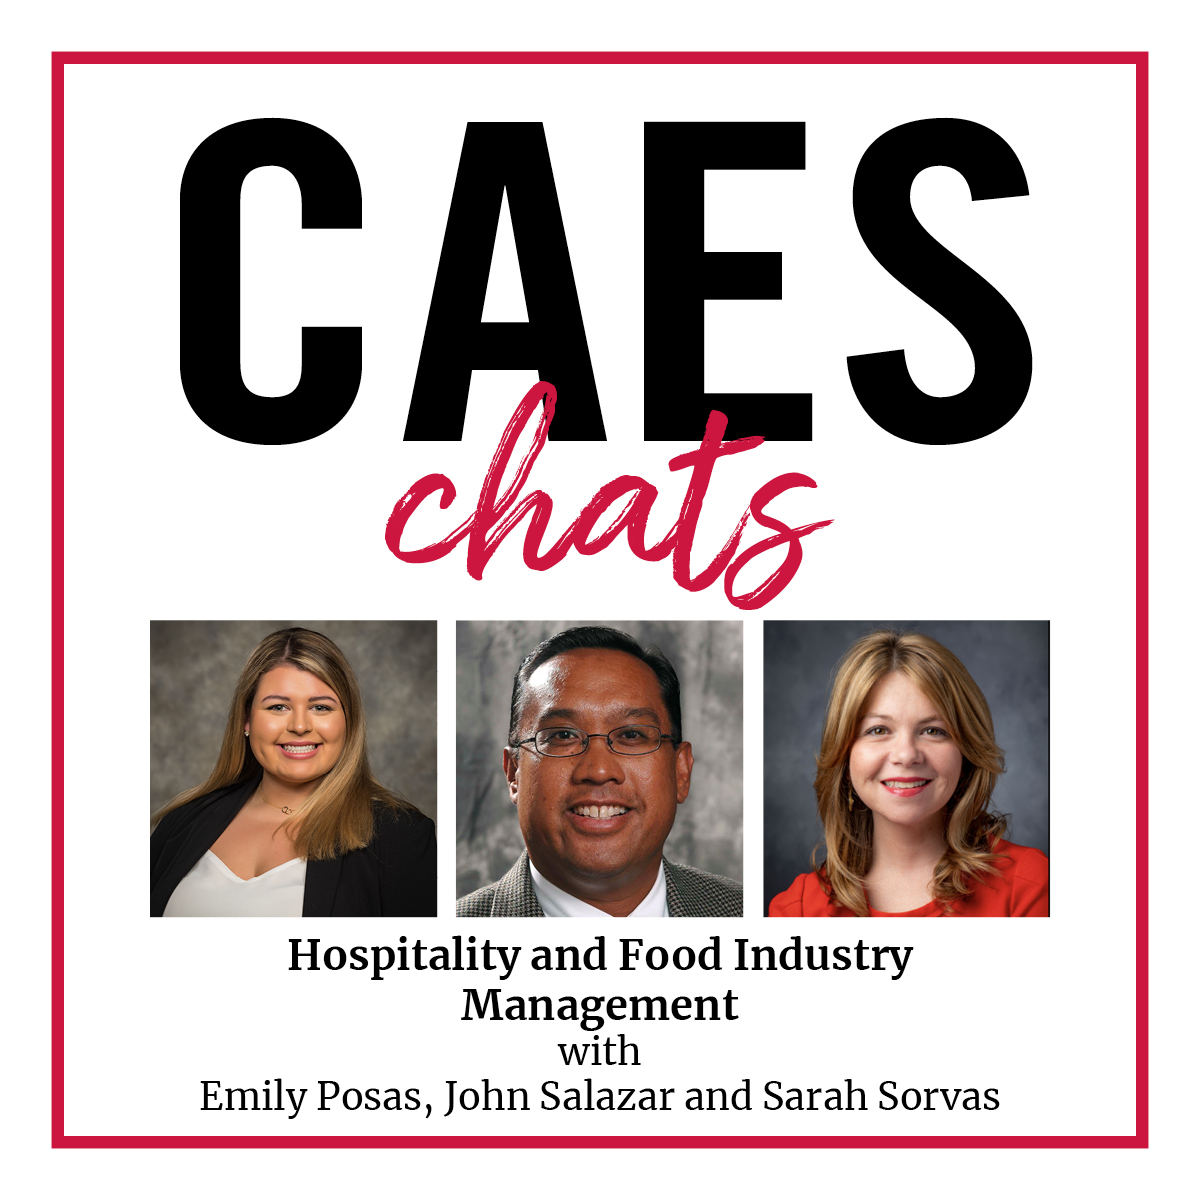 CAES Chats logo with images of the speakers - Emily Posas, John Salazar and Sarah Sorvas